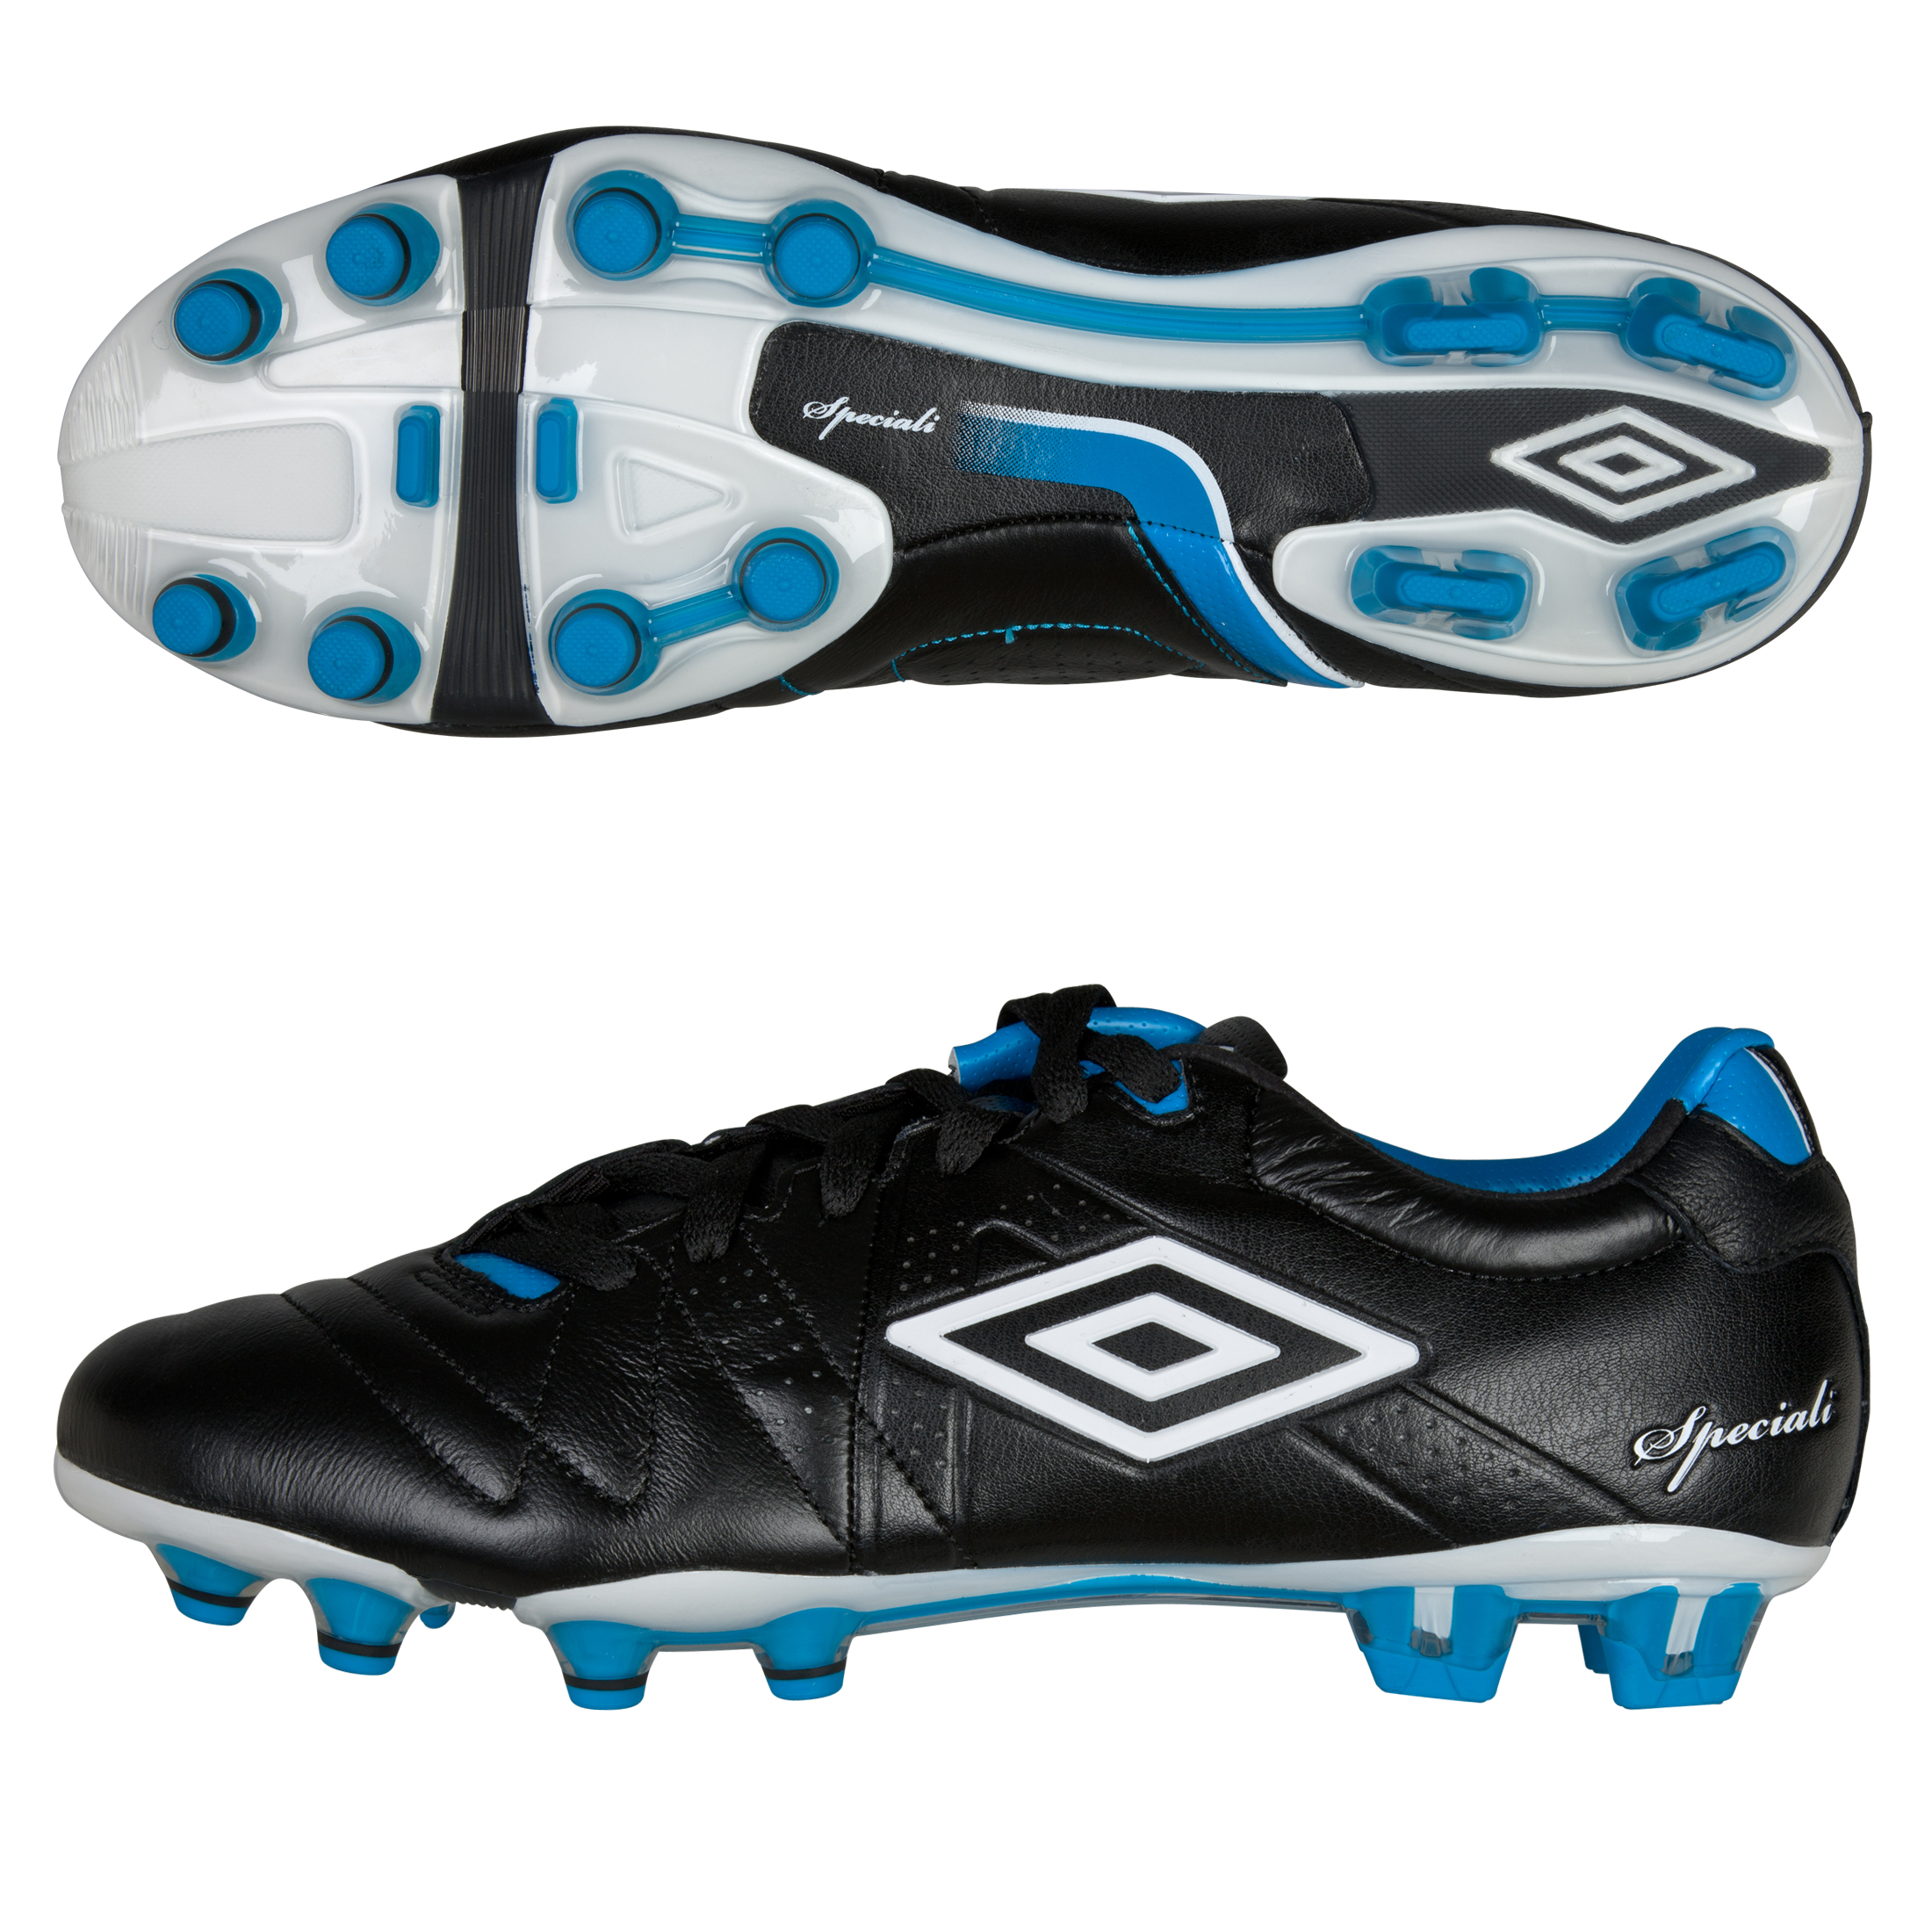 Umbro SpeciaII II Pro Hg- Black/White/Mid Blue